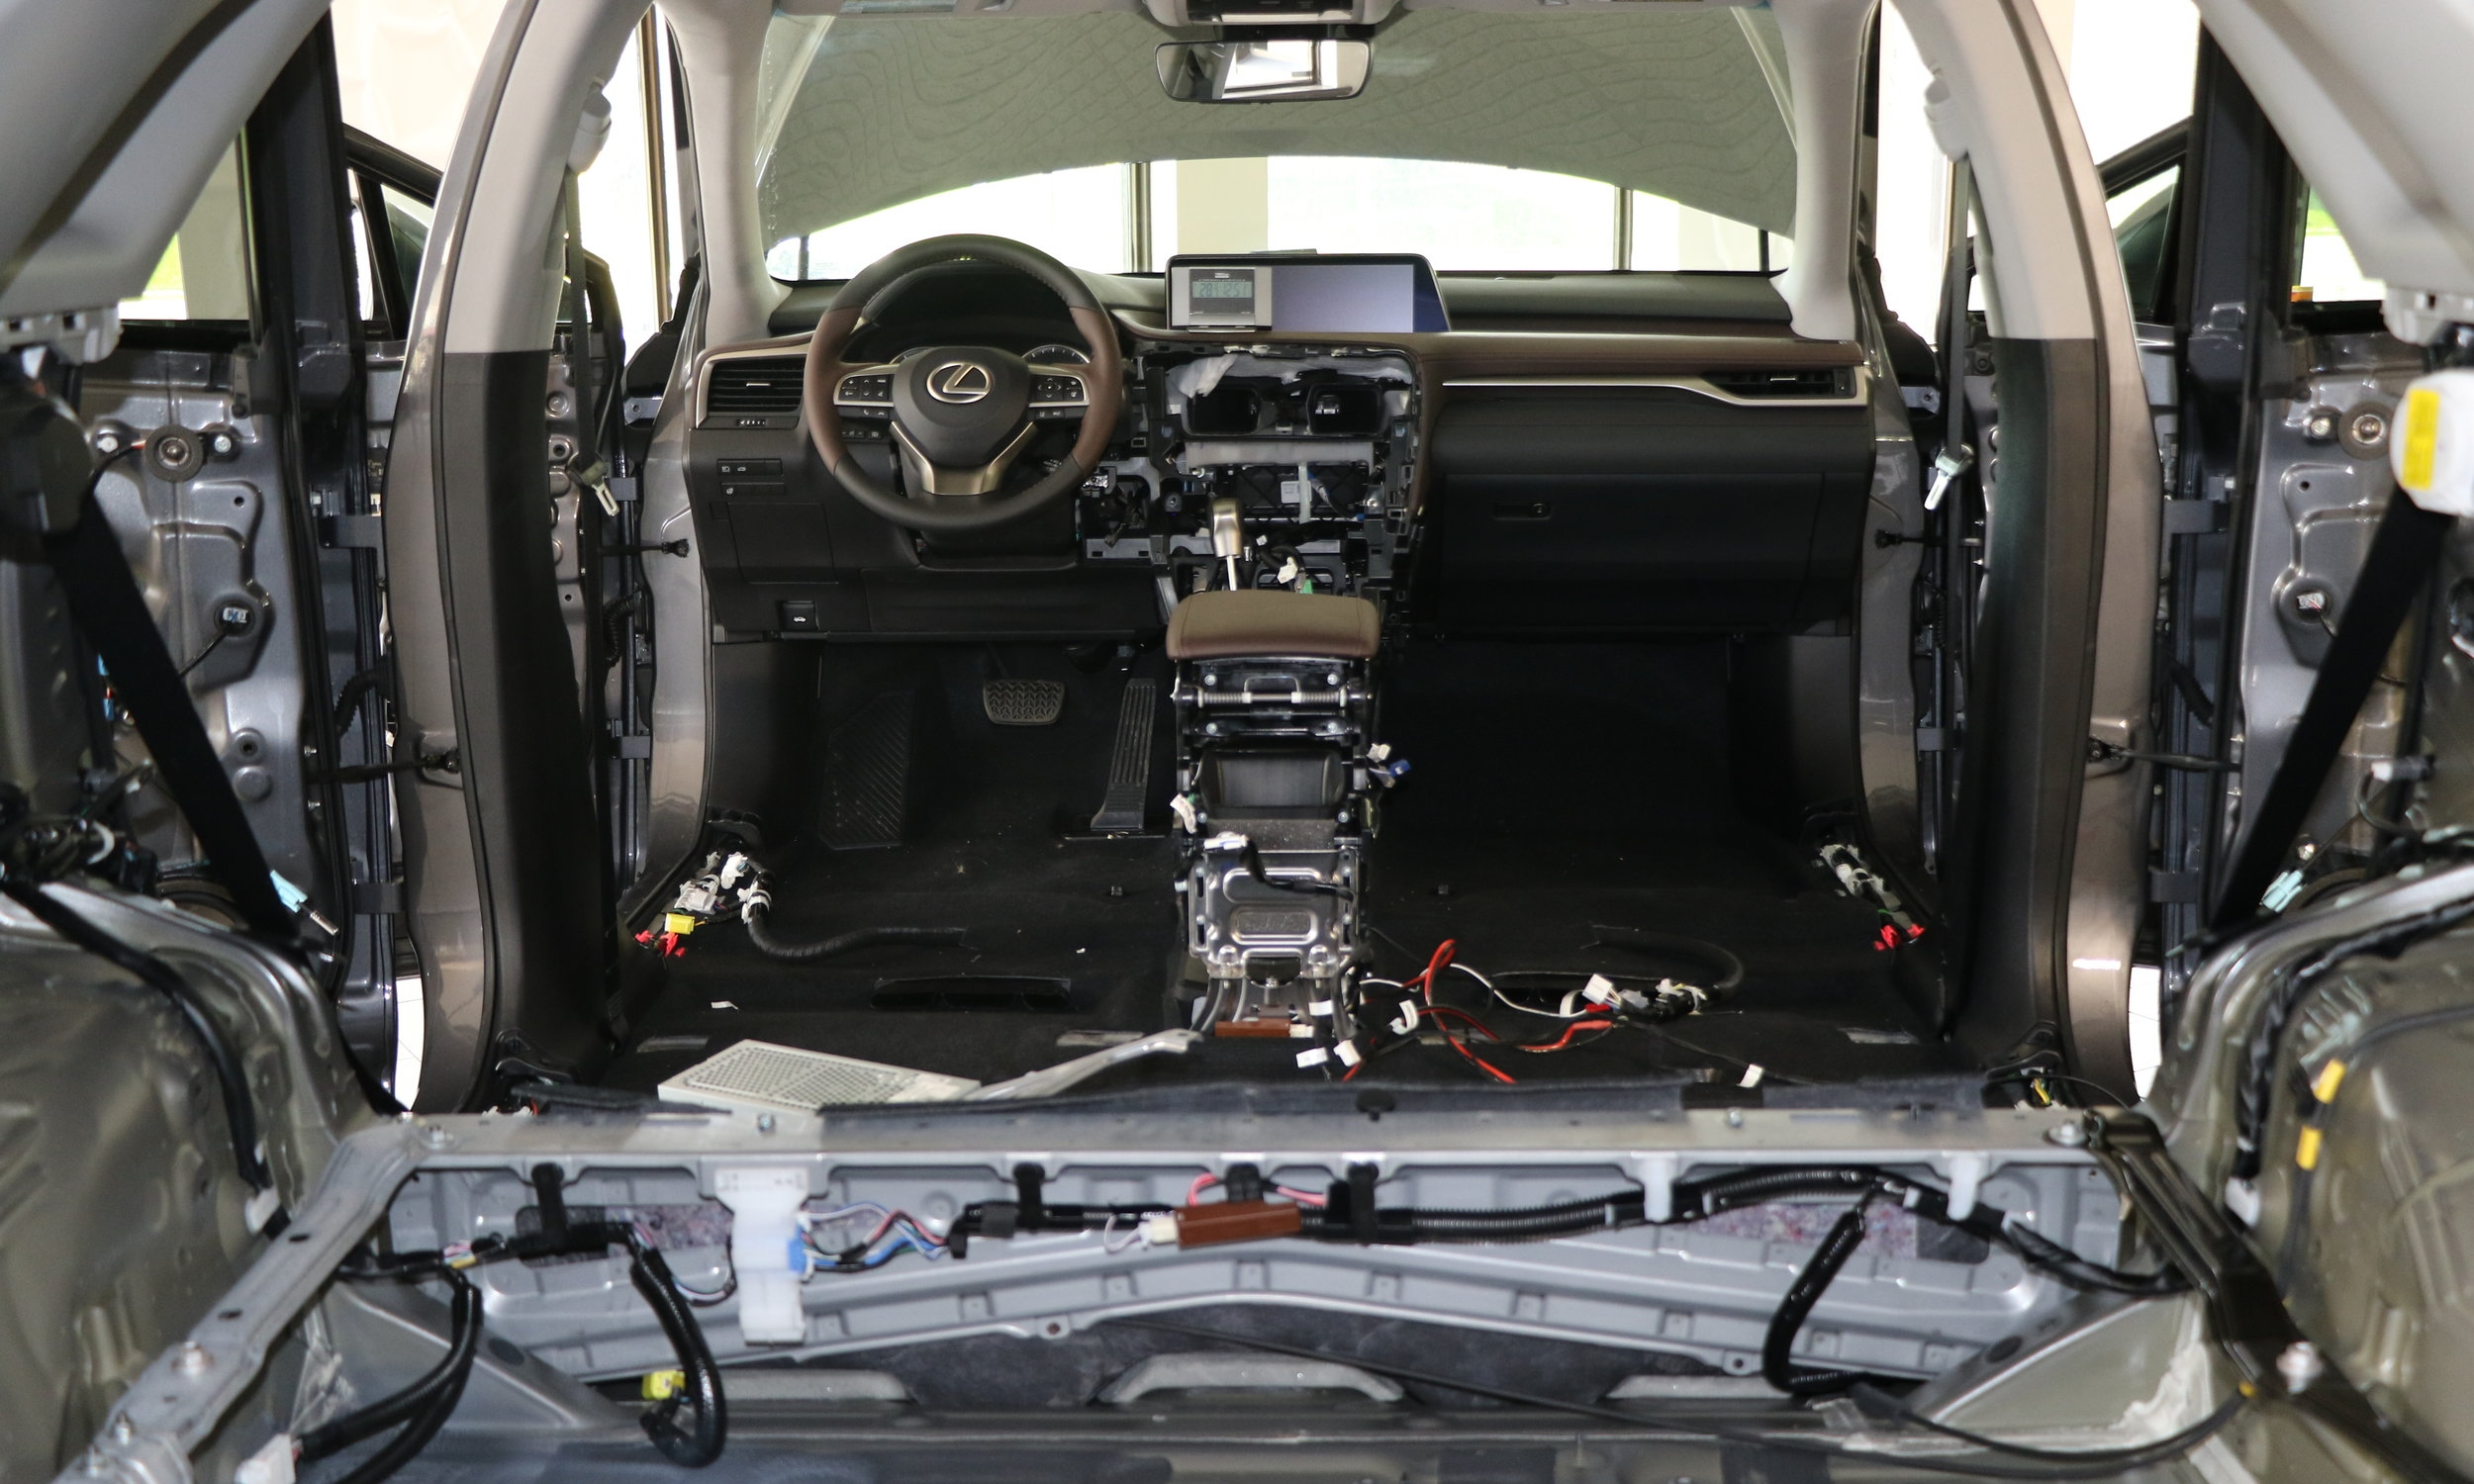 Lexus Interior Disassembly 01